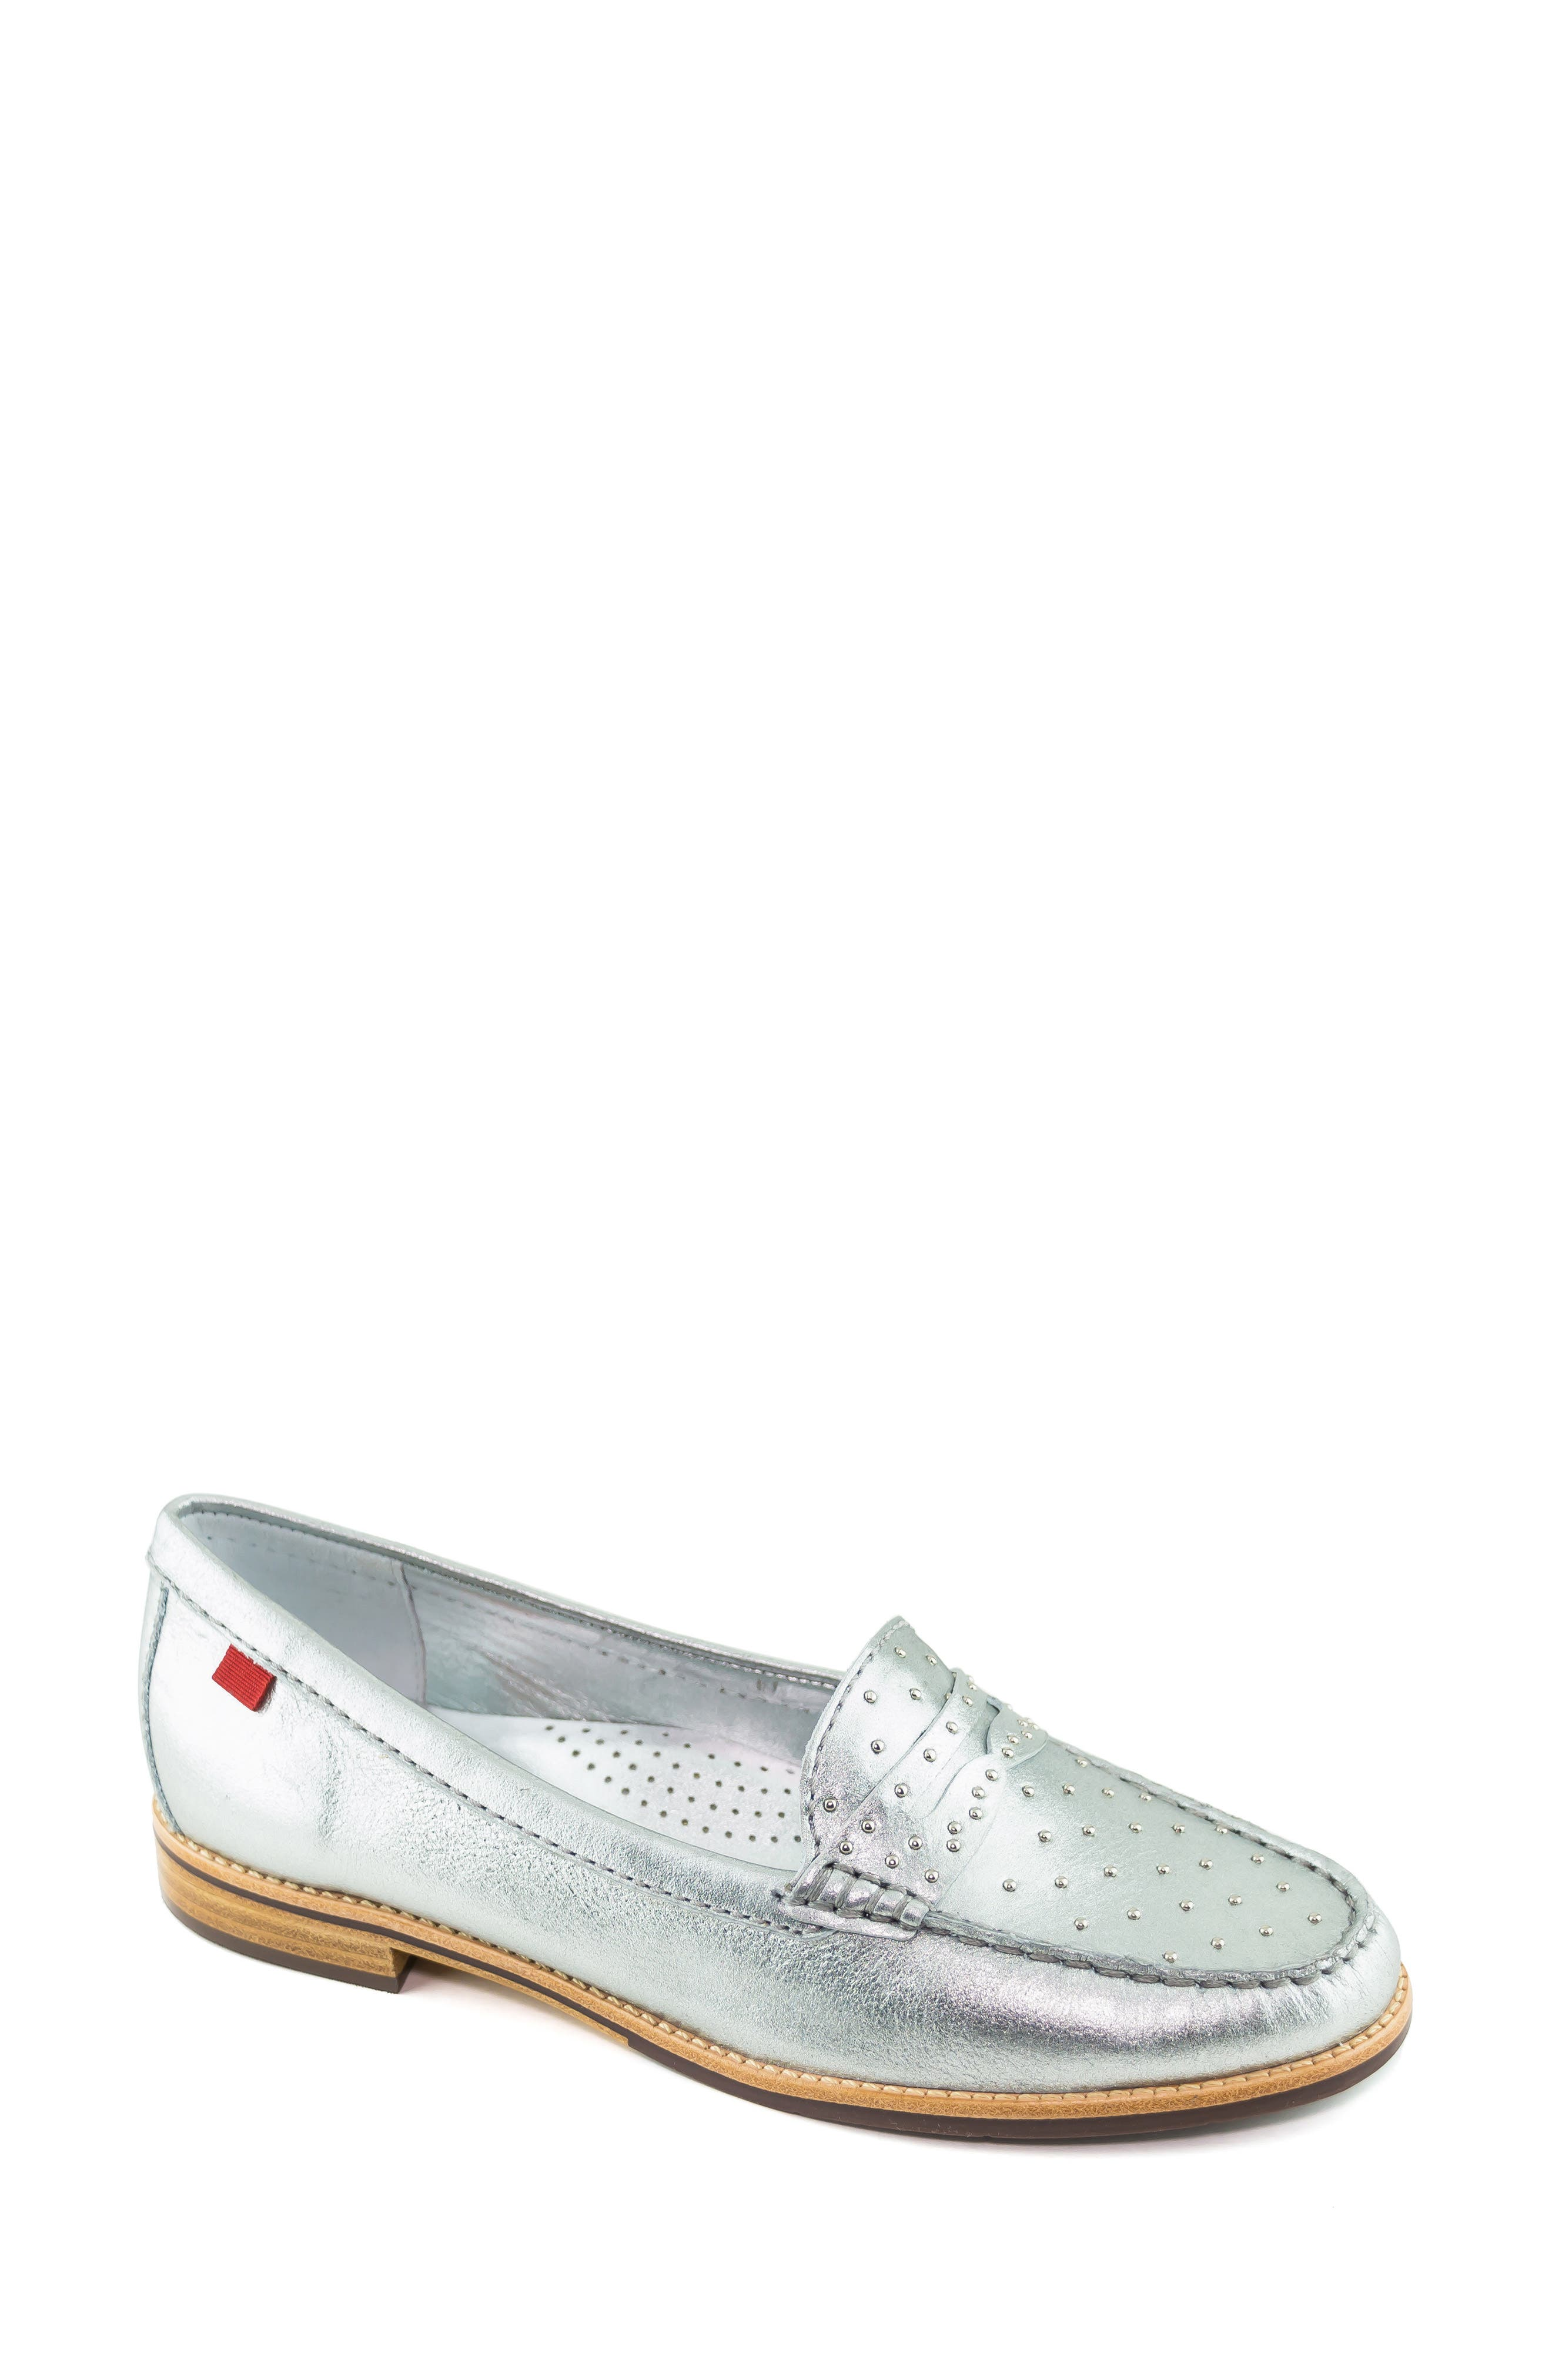 MARC JOSEPH NEW YORK East Village III Studded Loafer, Main, color, SILVER LEATHER